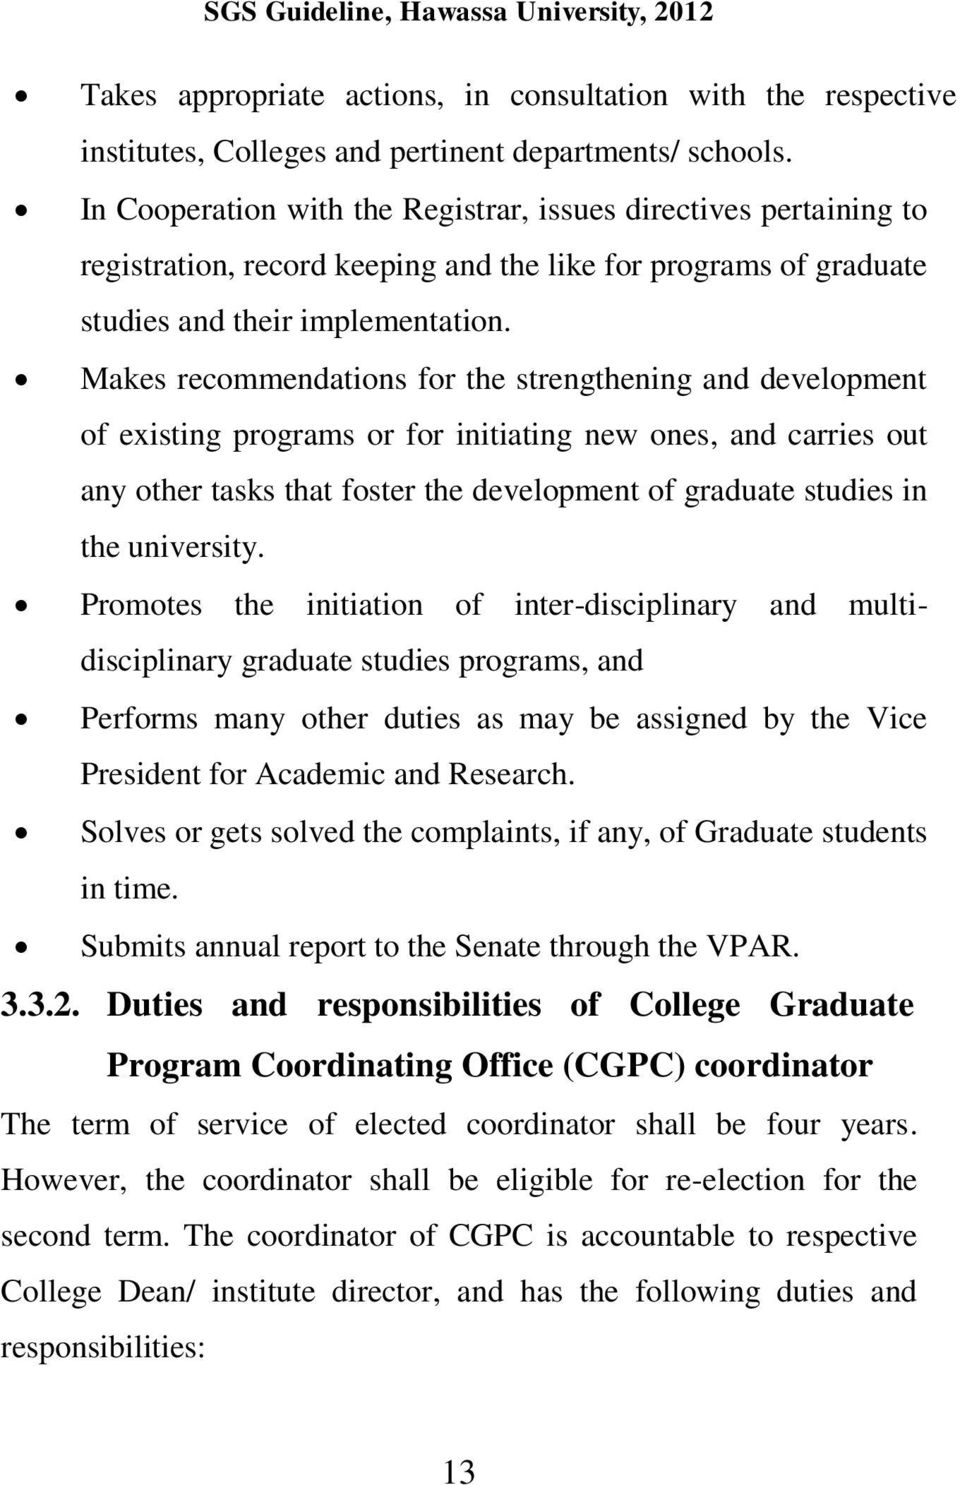 GENERAL POLICY GUIDELINES FOR GRADUATE STUDIES HAWASSA UNIVERSITY